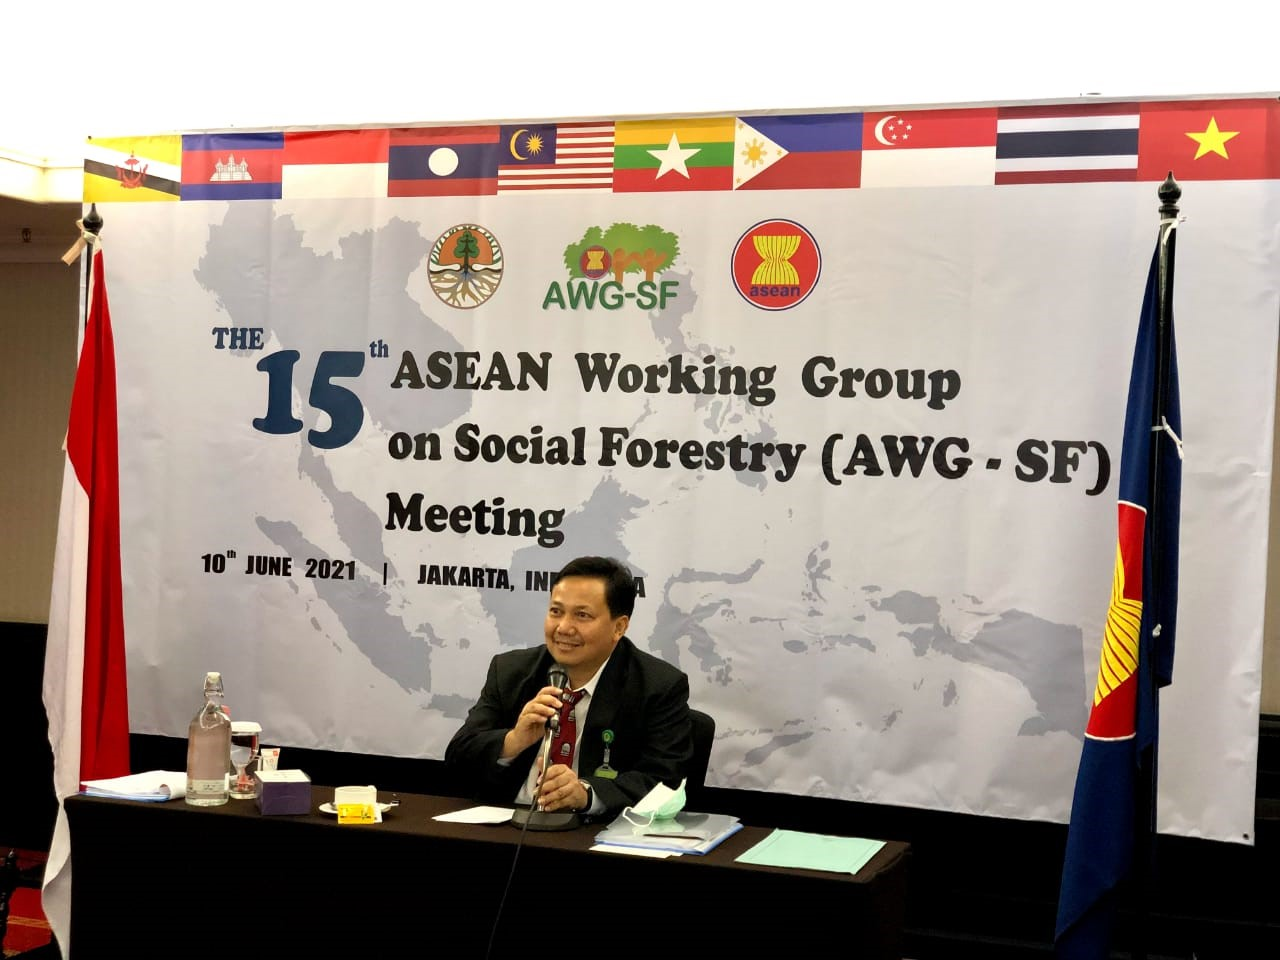 The 15th Asean Working Group on Social Forestry (AWG-SF) Meeting